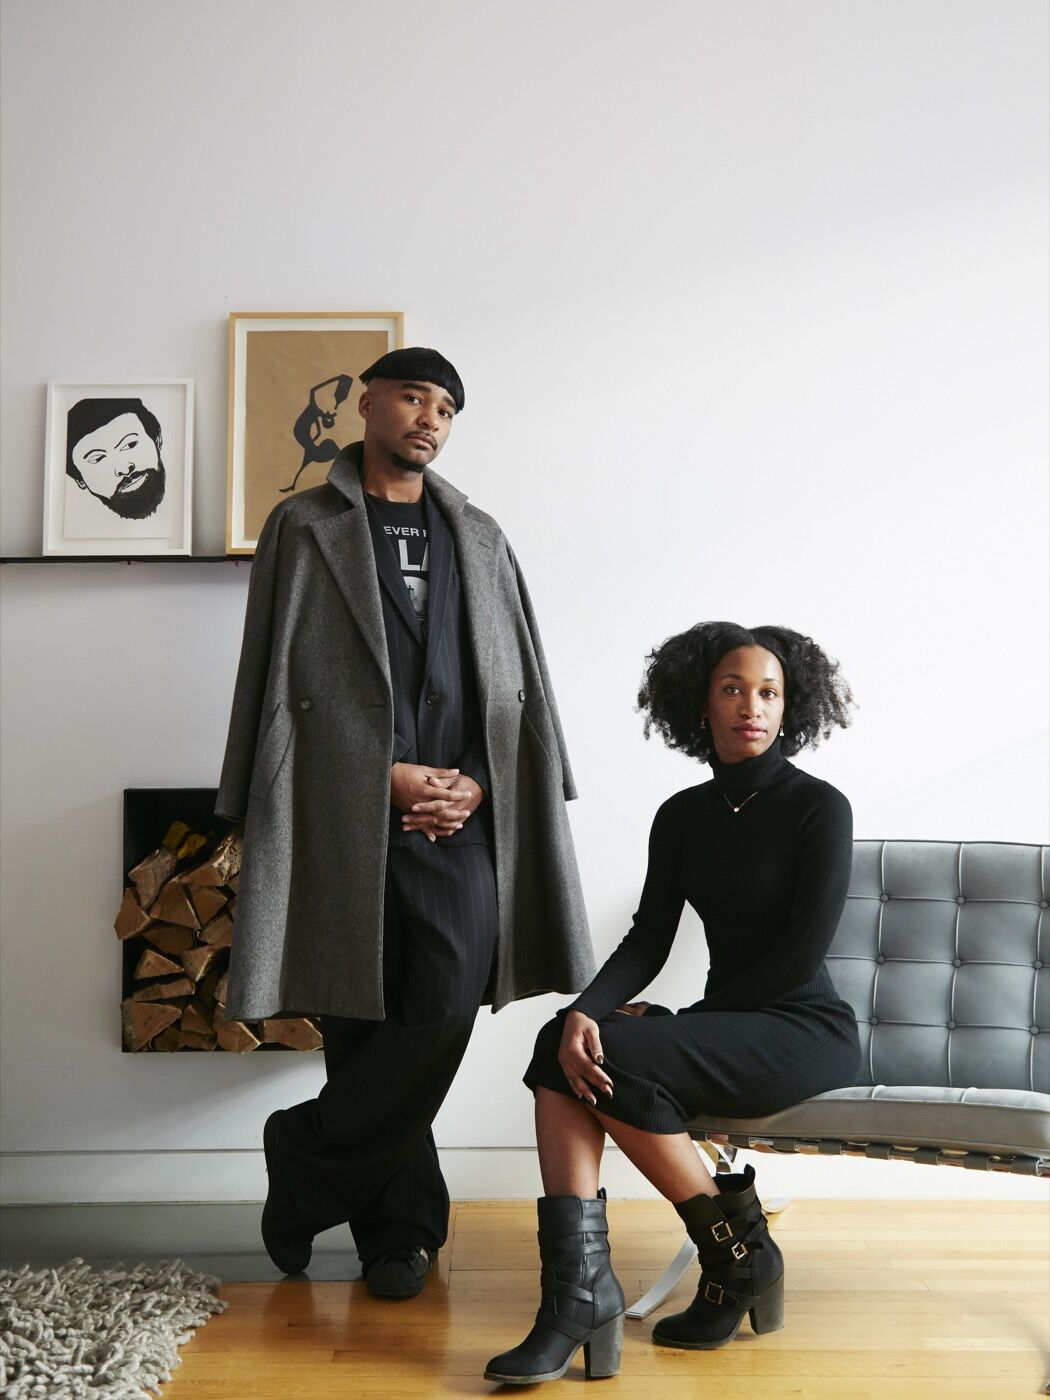 Portrait of Jacolby Satterwhite and Tschabalala Self at the home of Corey Baylor by Emily Johnston for Artsy.